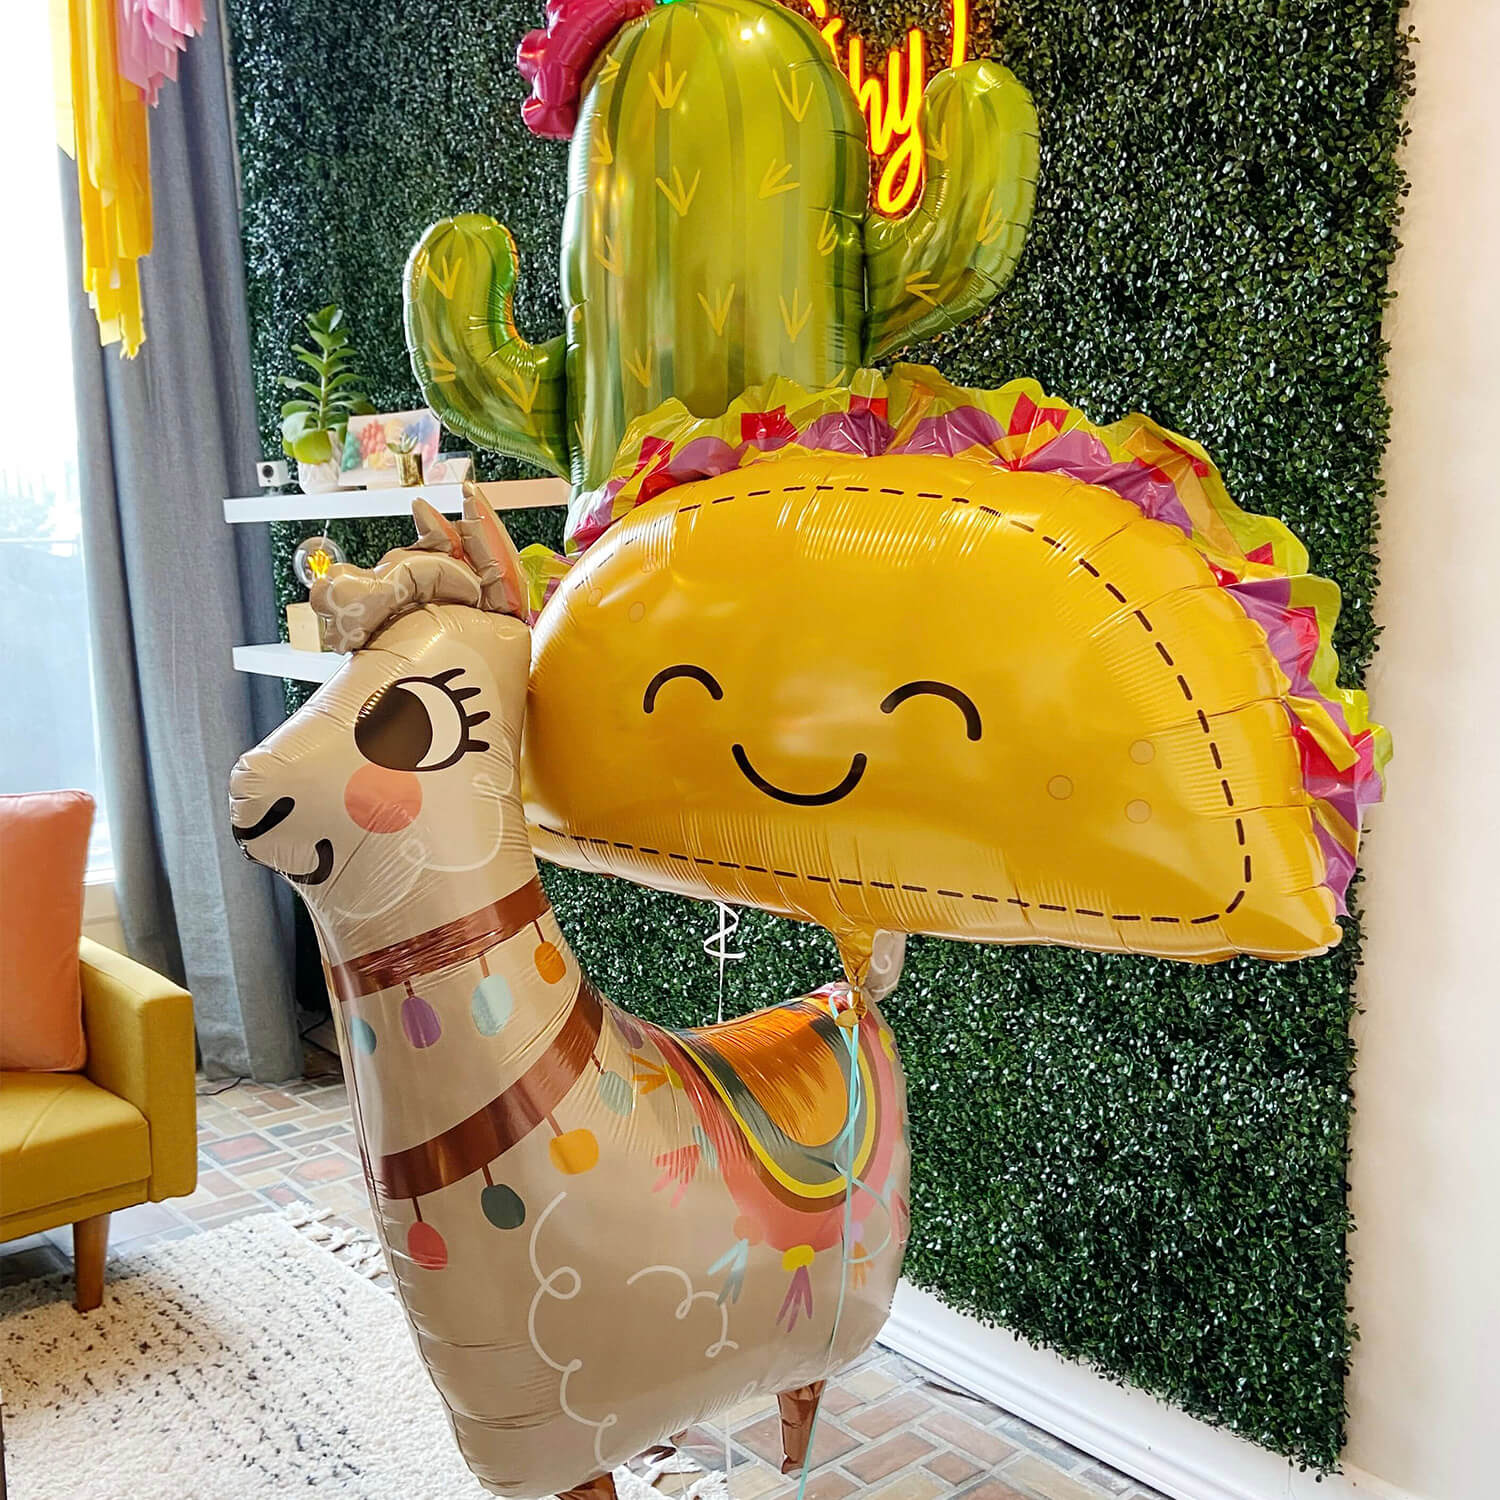 Make someone as happy as a llama with a helium bouquet like this one with giant taco, llama, and cactus balloons from Just Peachy.